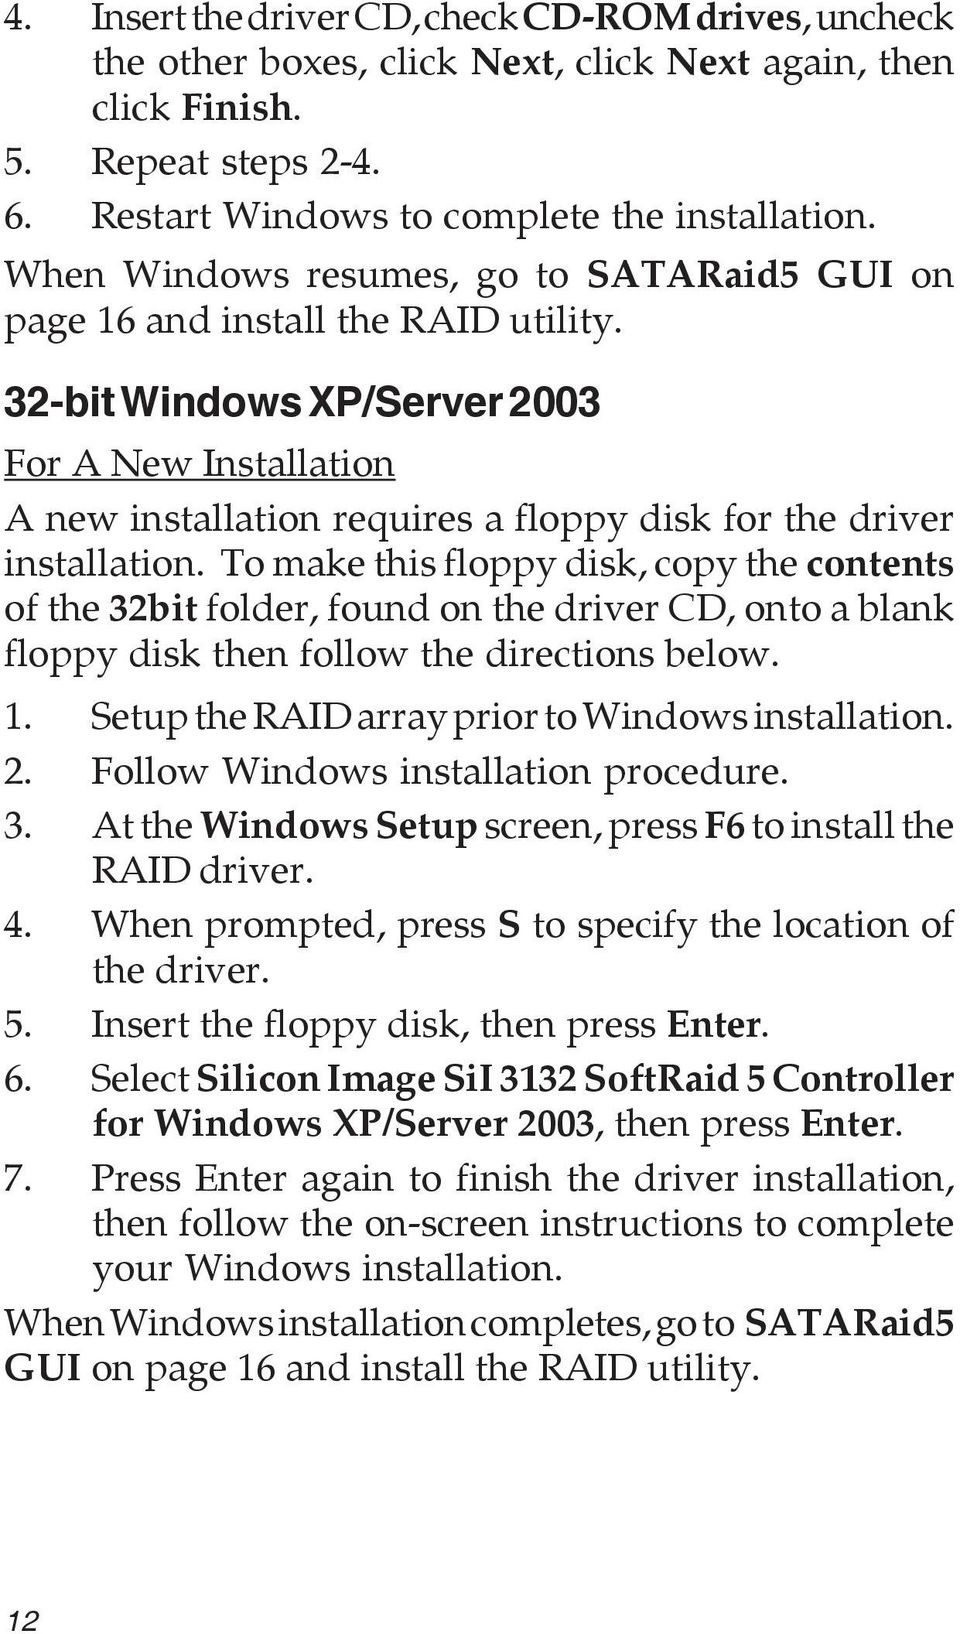 32-bit Windows XP/Server 2003 For A New Installation A new installation requires a floppy disk for the driver installation.